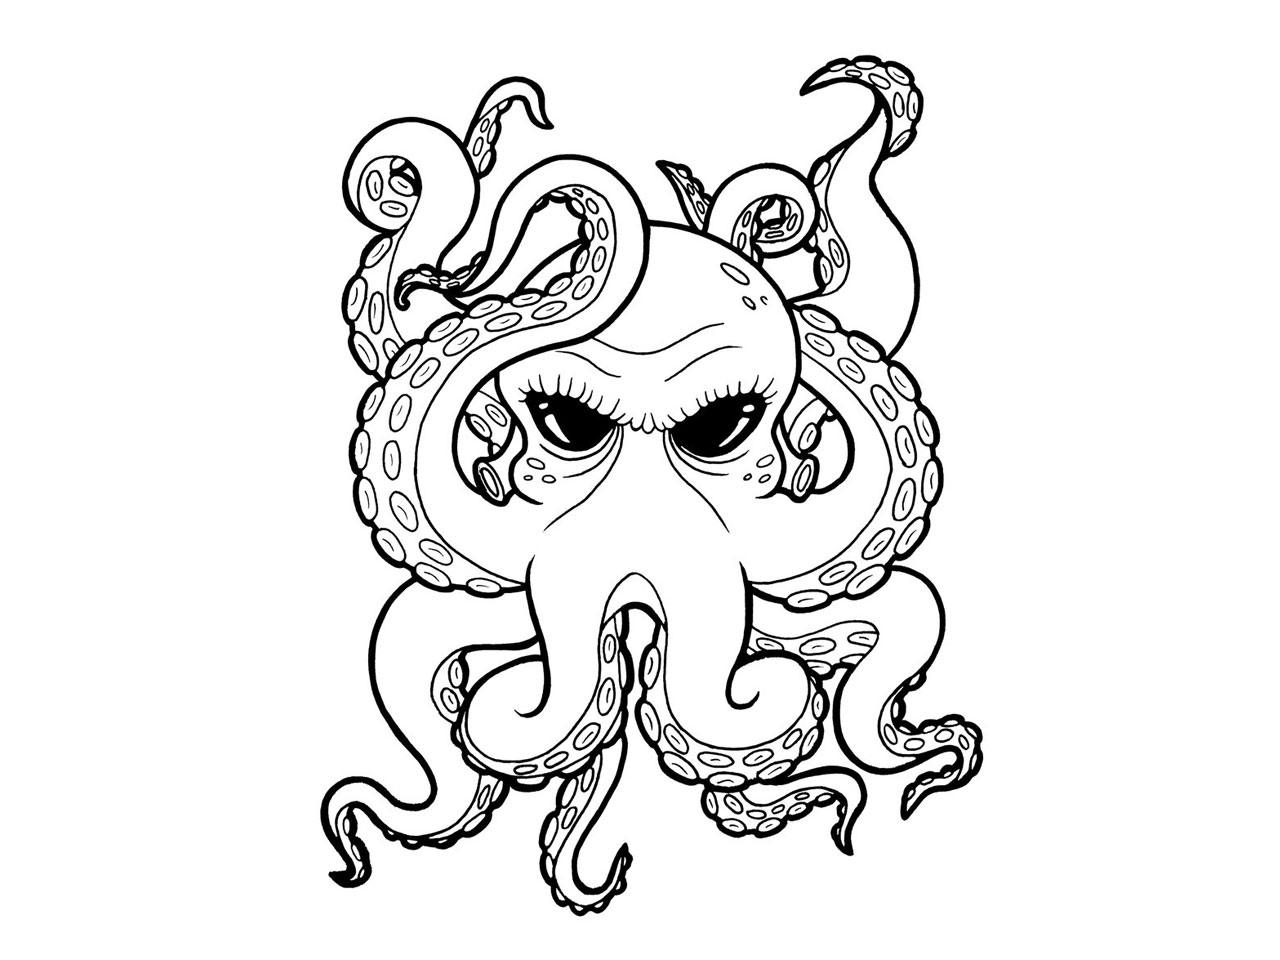 Free Octopus Drawings Octopus Drawing Black And